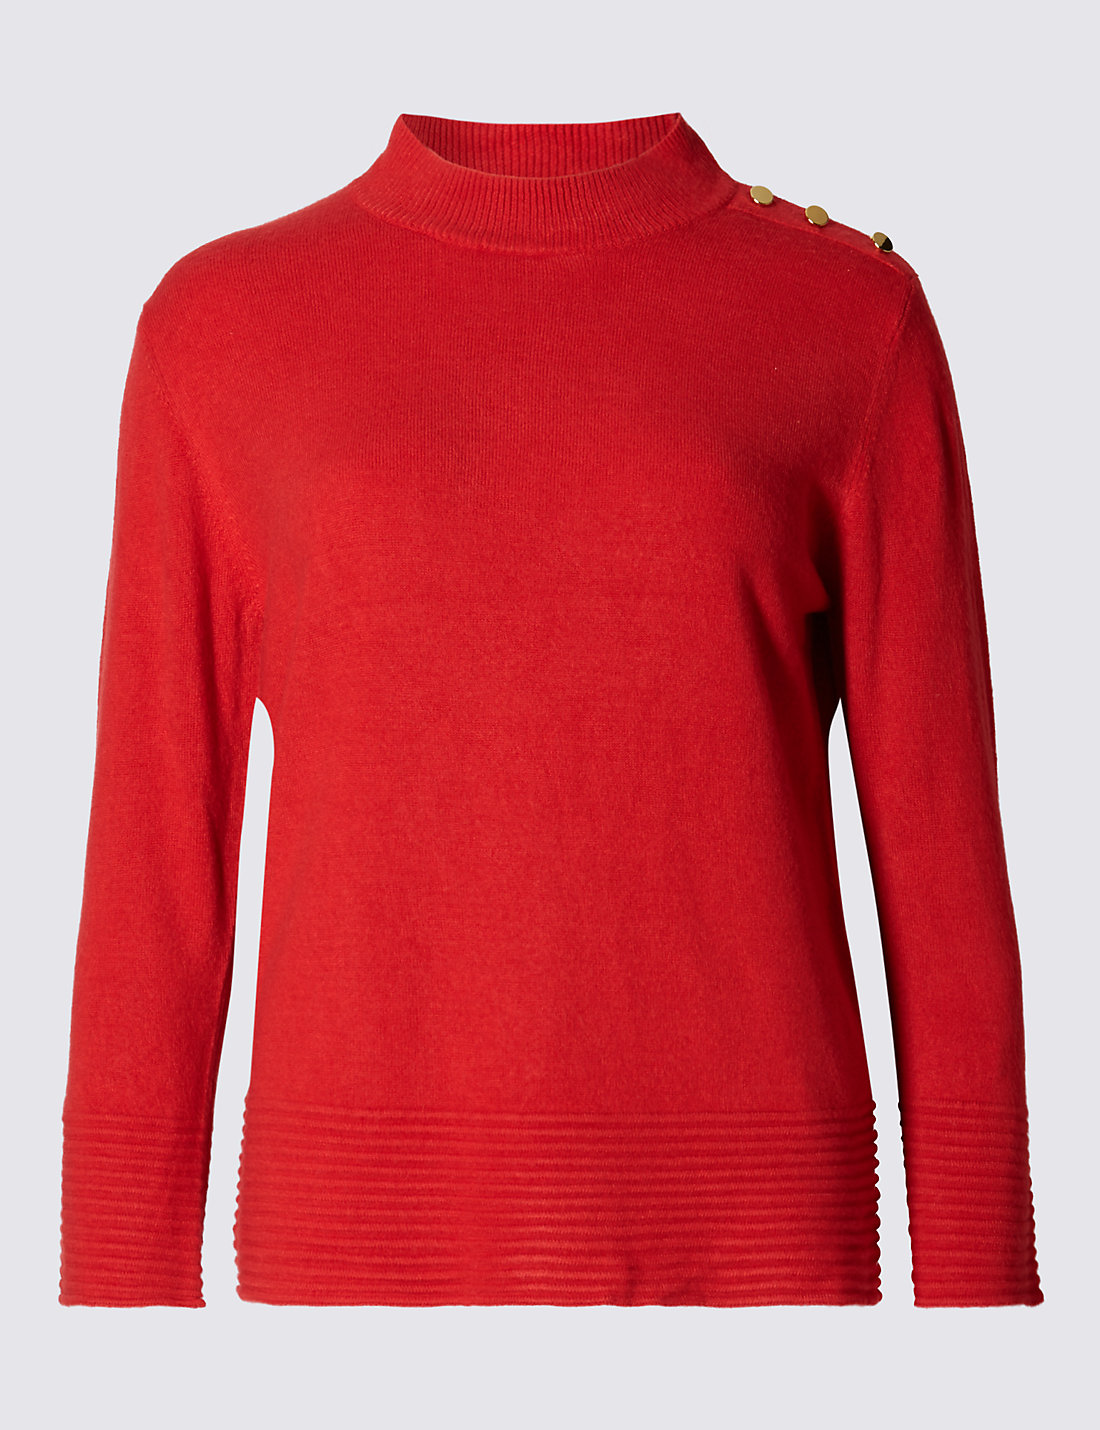 PER UNA New Ripple Turtle Neck 3/4 Sleeve Jumper £25.00 Click t visit M&S